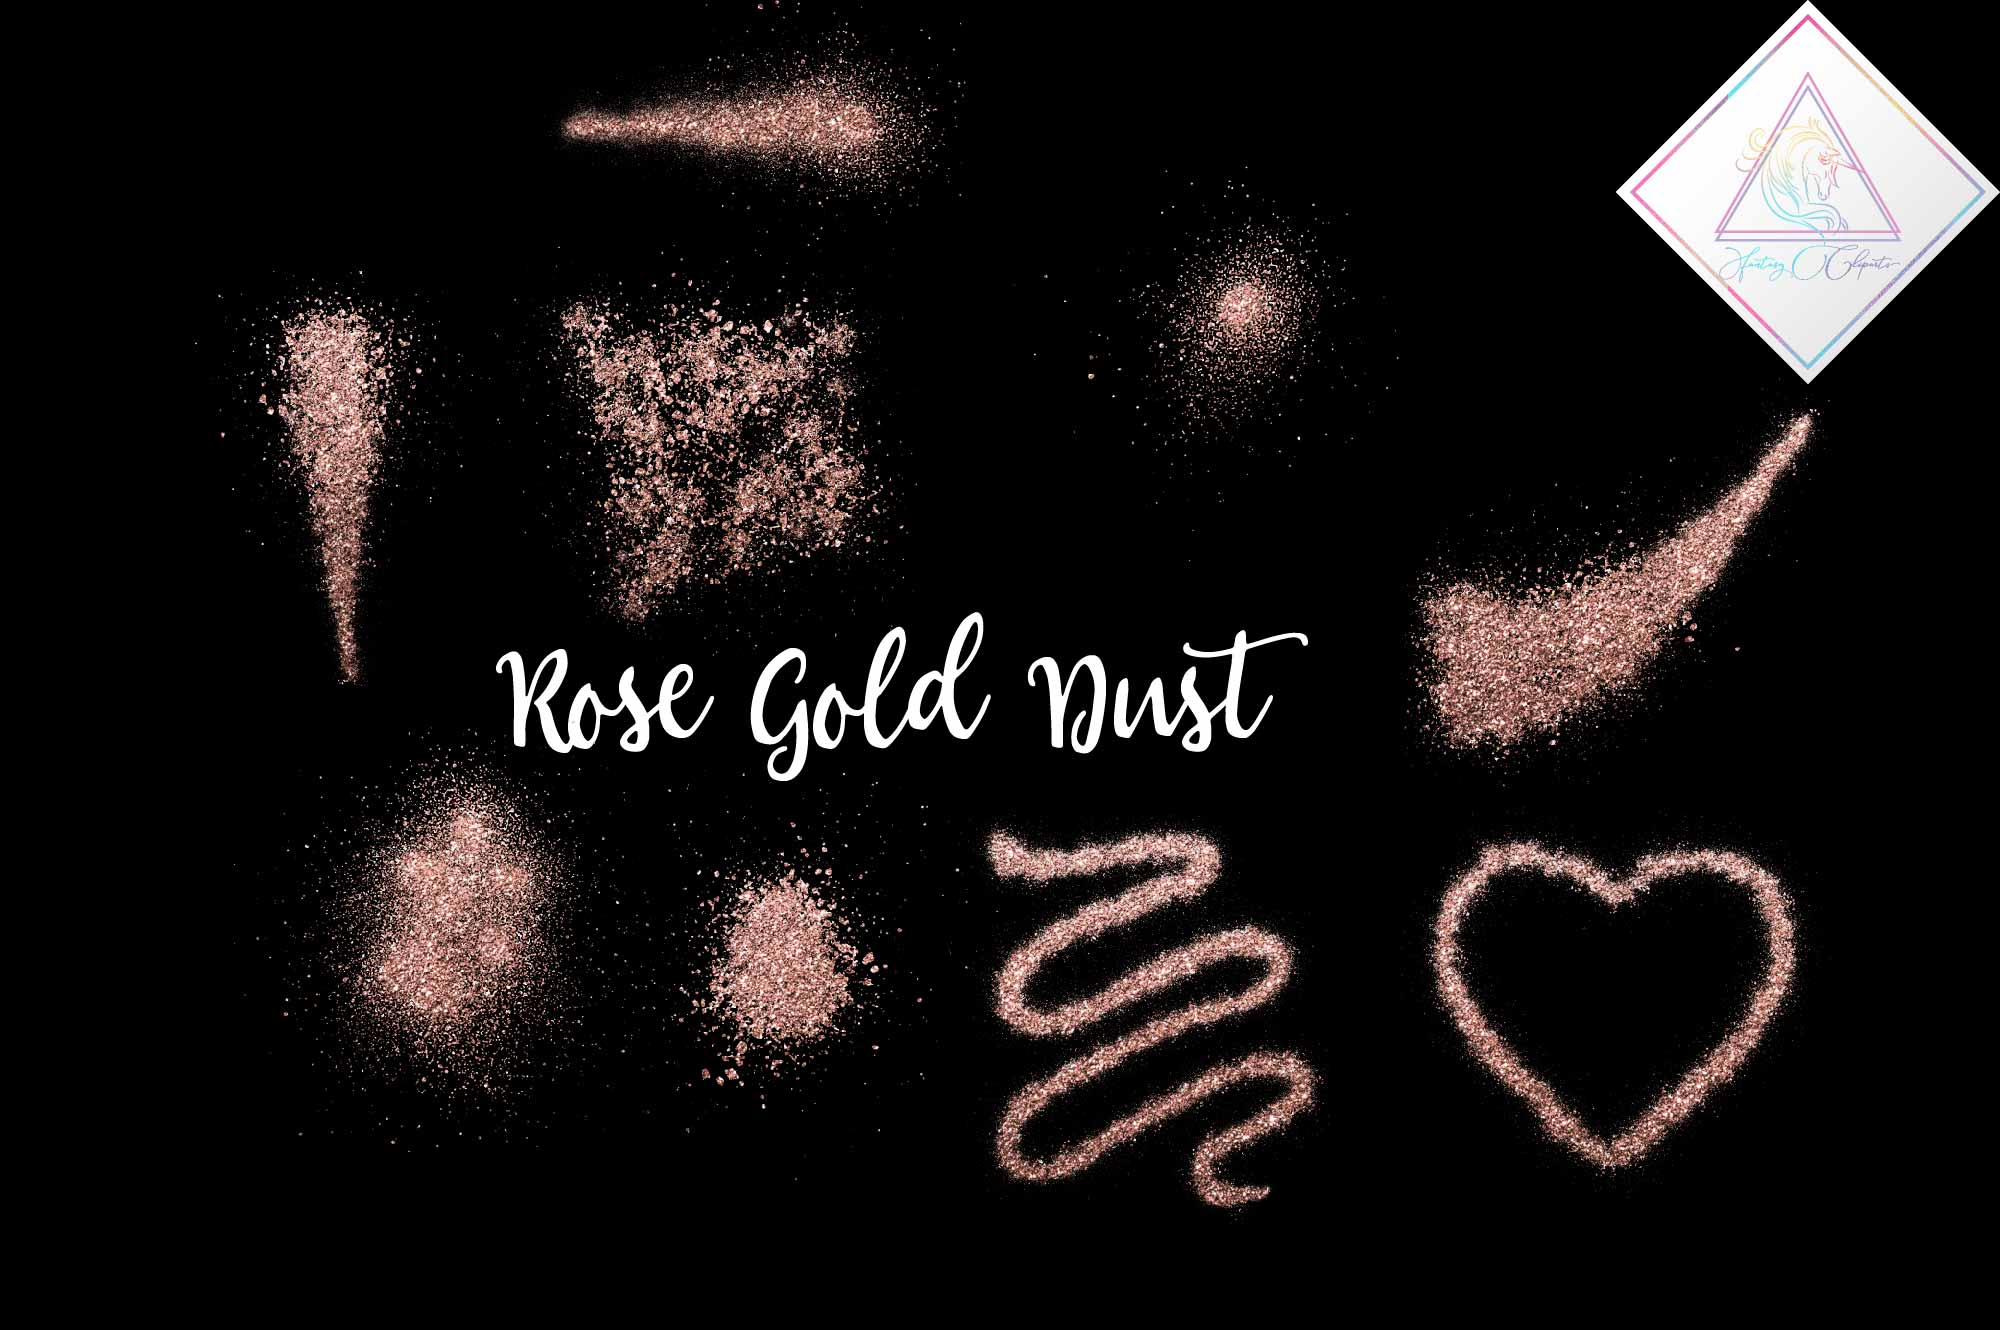 Download Free Rose Gold Glitter Dust Clipart Overlay Grafico Por for Cricut Explore, Silhouette and other cutting machines.